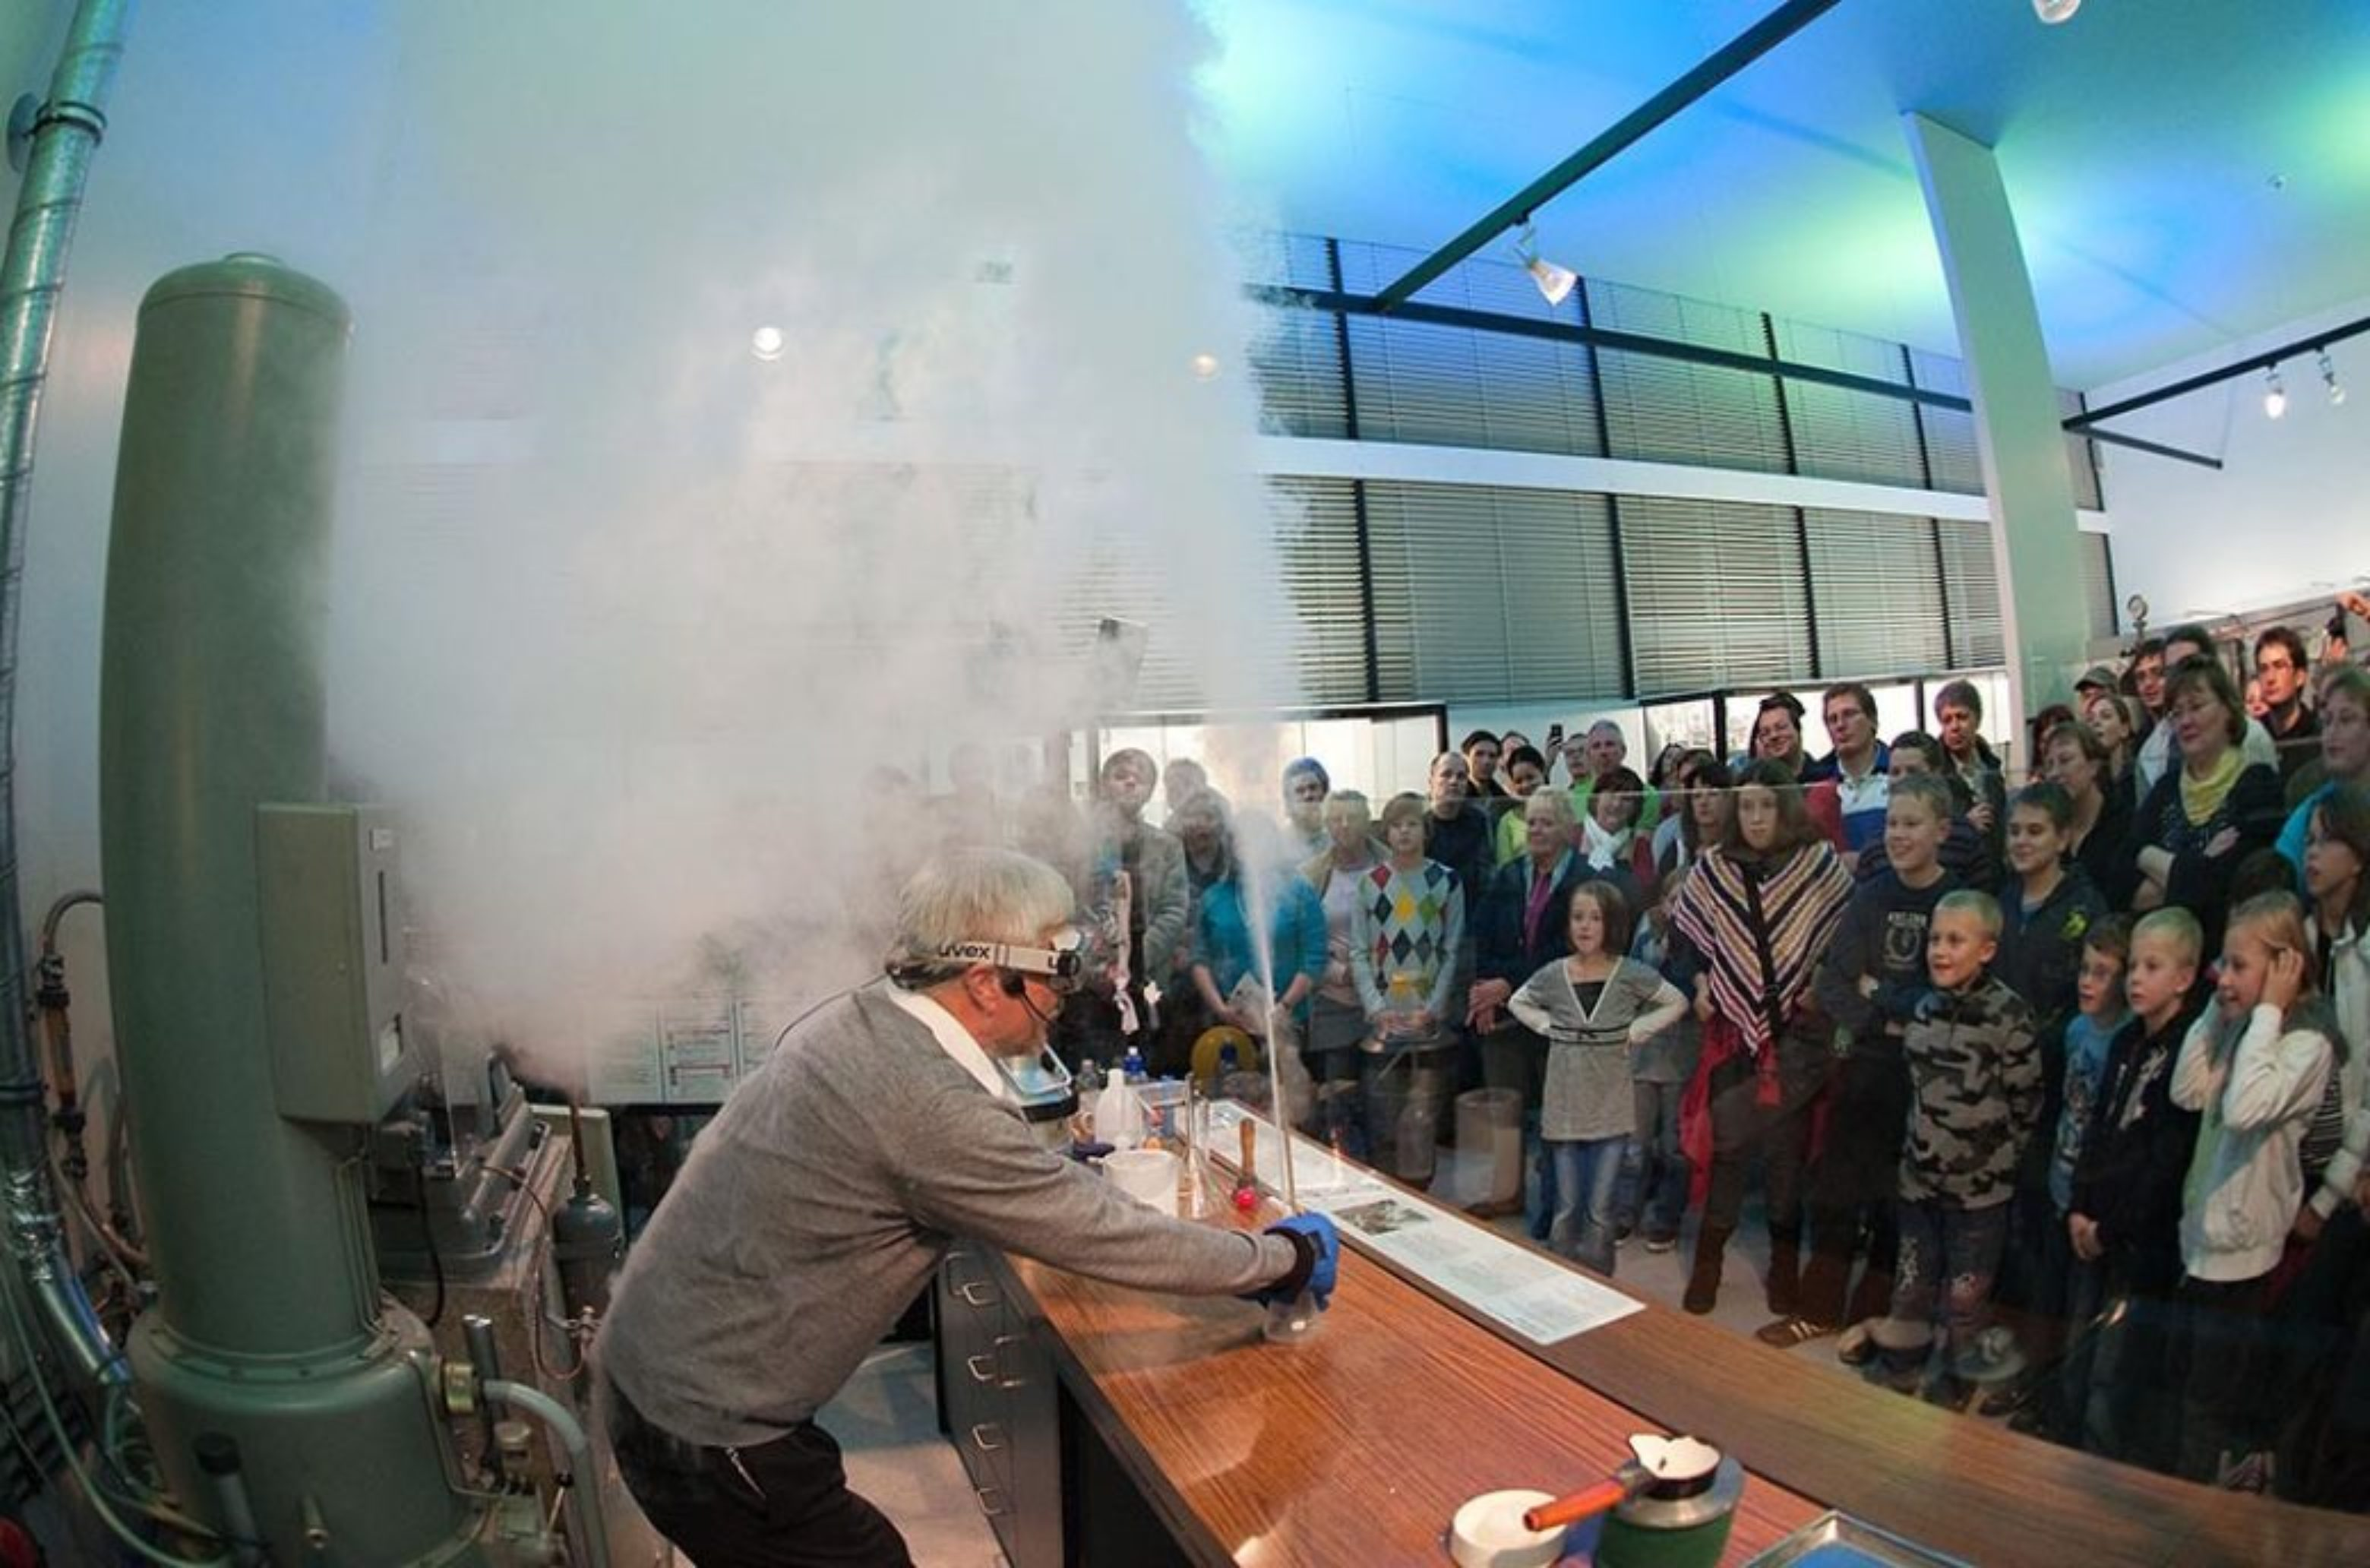 Science demonstrations: Experiments with nitrogen are on display at the museum's physics section